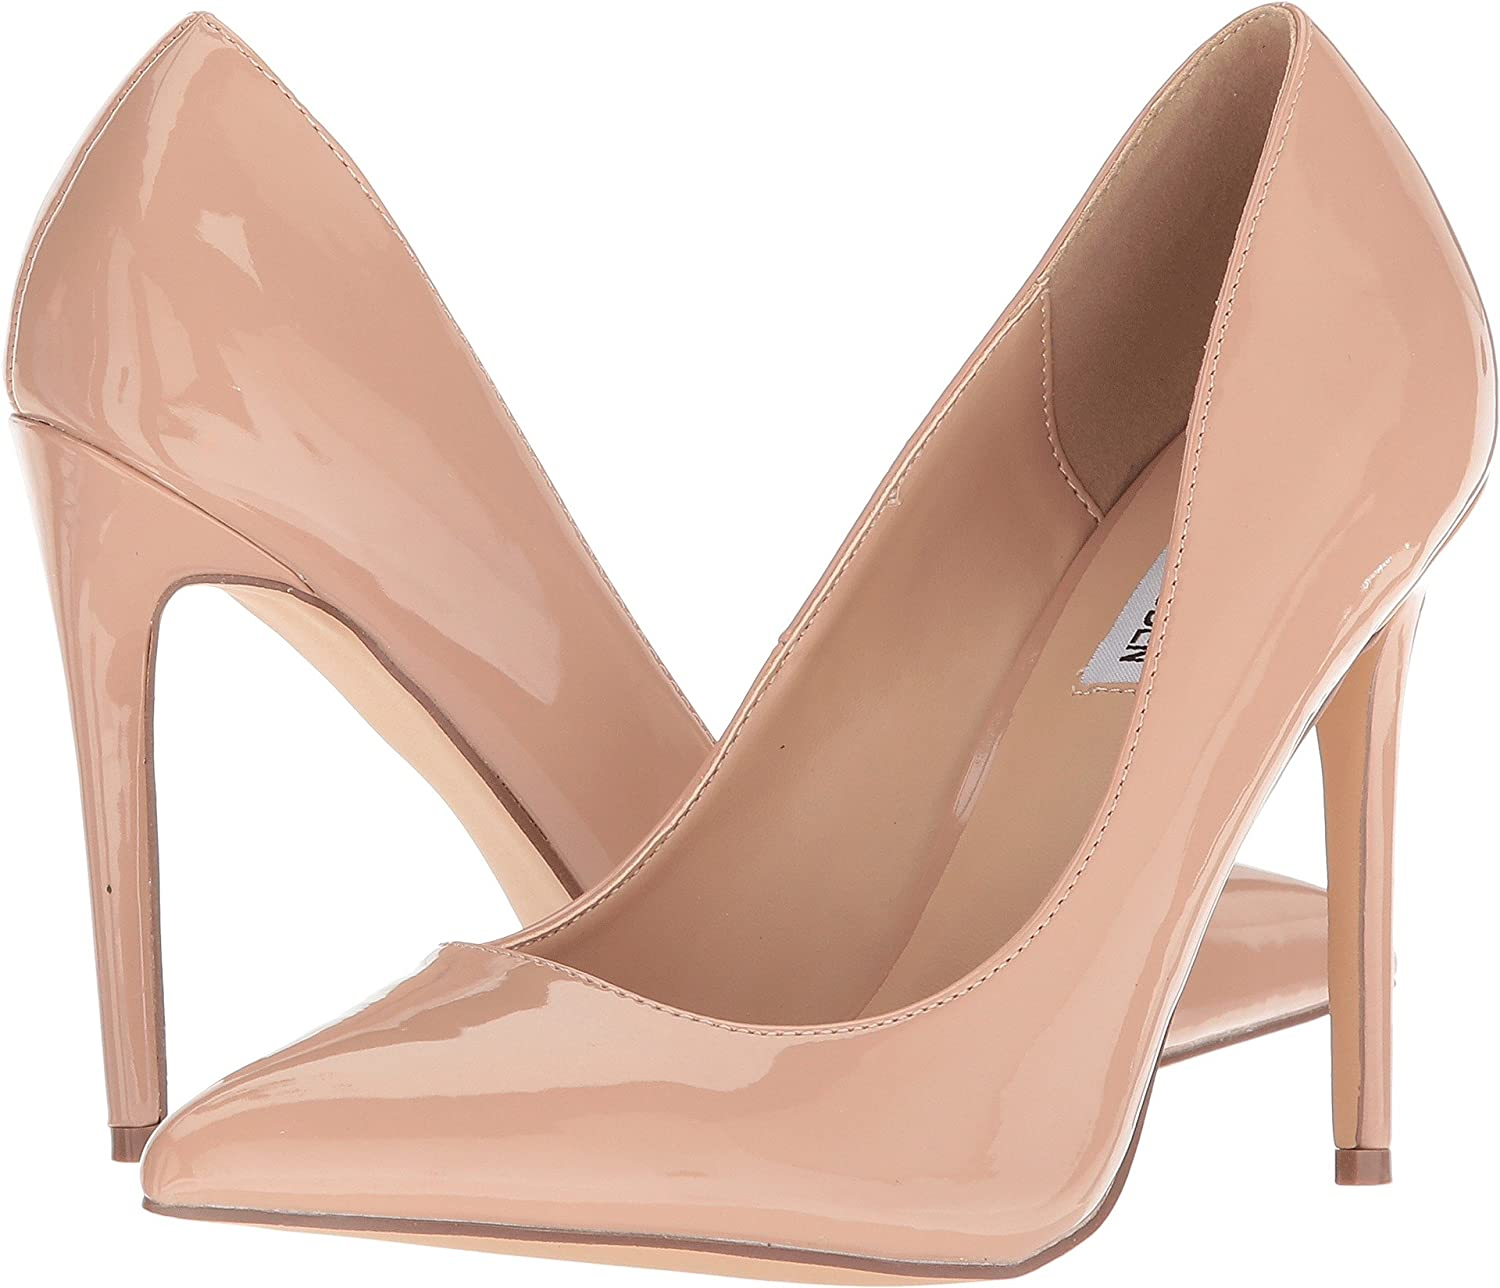 Steve Madden Womens Orkid Leather Pointed Toe Classic Pumps B07B9HMZL8 6.5 M US|Blush Patent